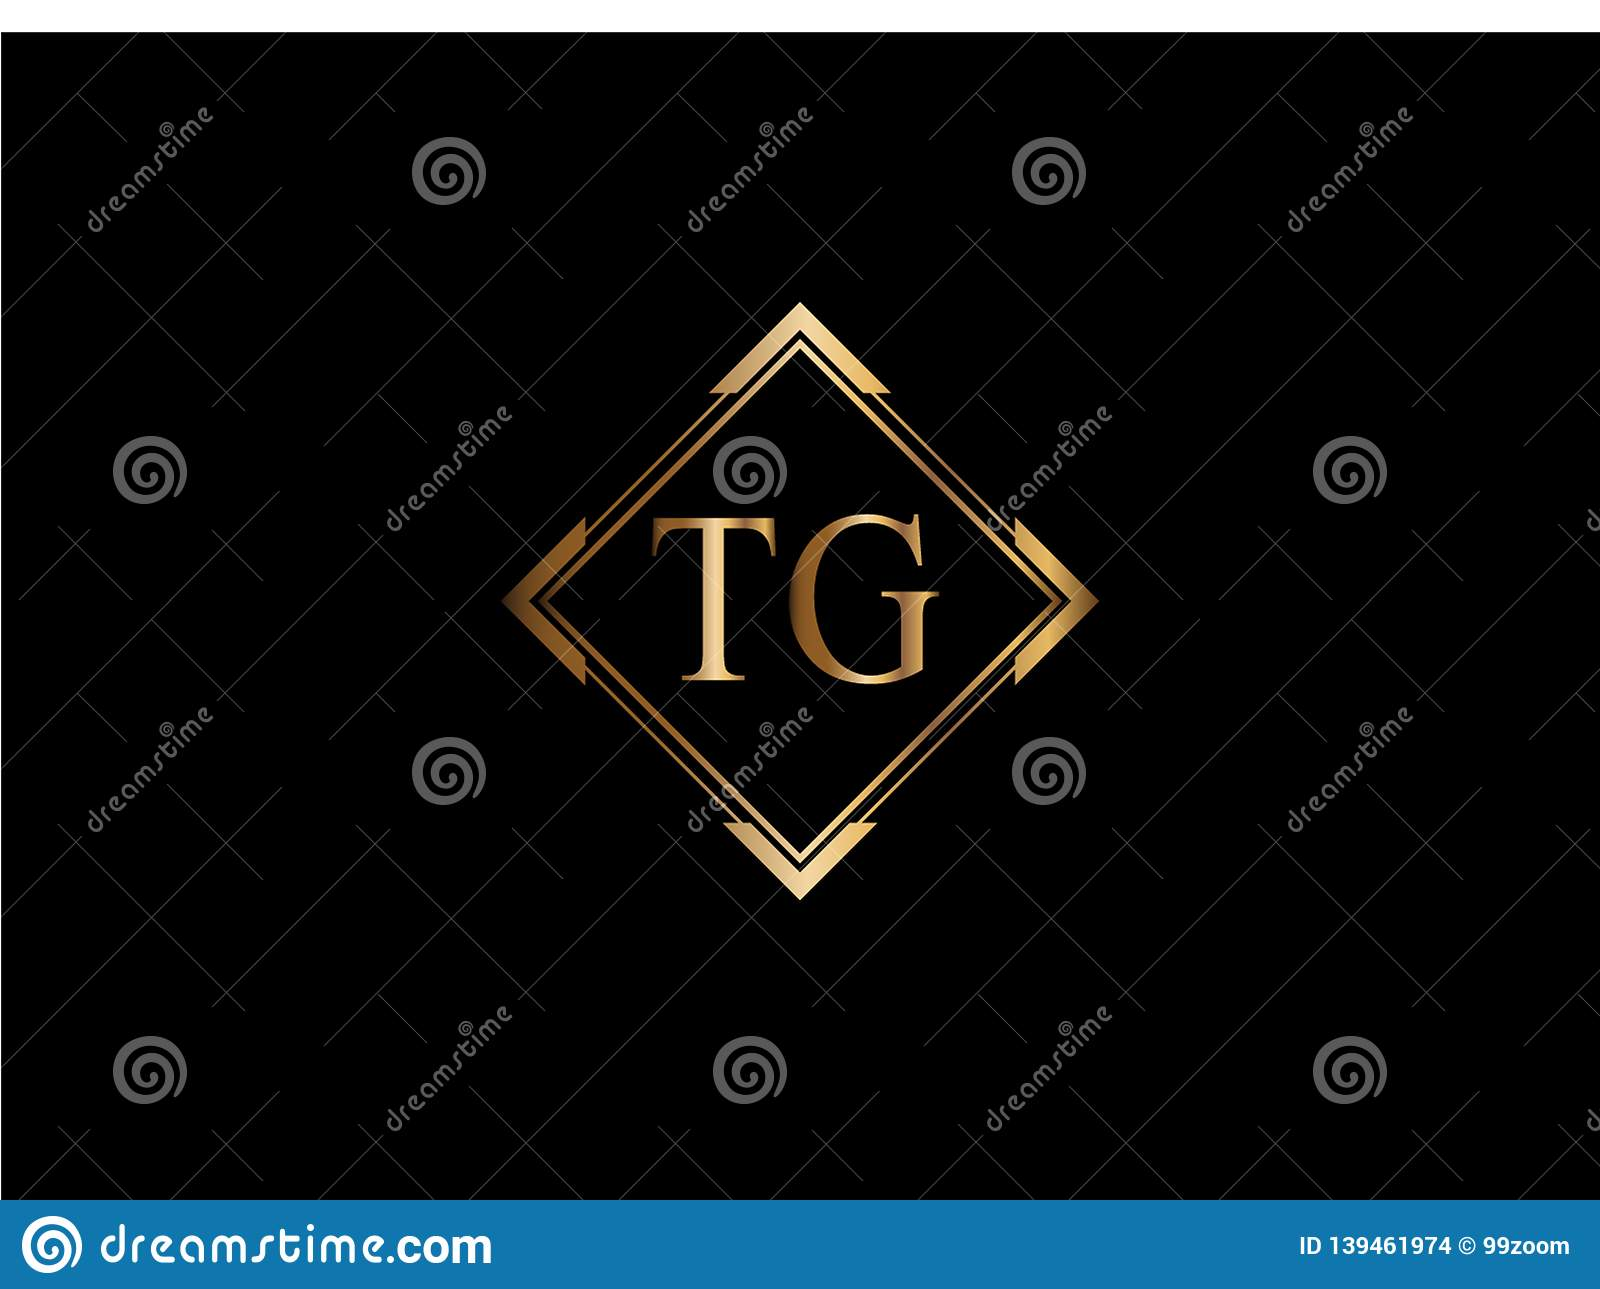 Tg Initial Diamond Shape Gold Color Later Logo Design Stock